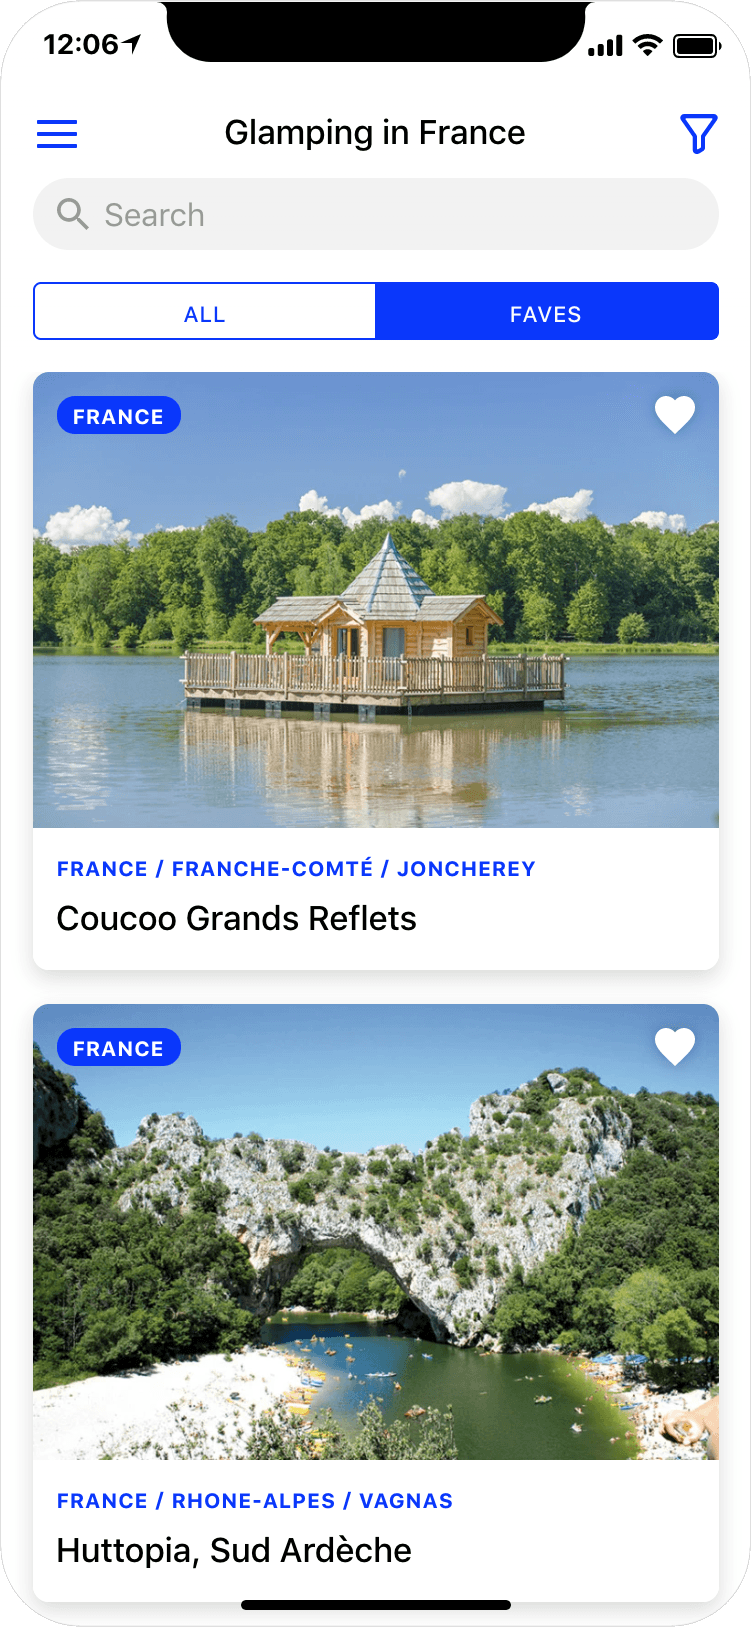 Glamping in France - search results page, app screenshot